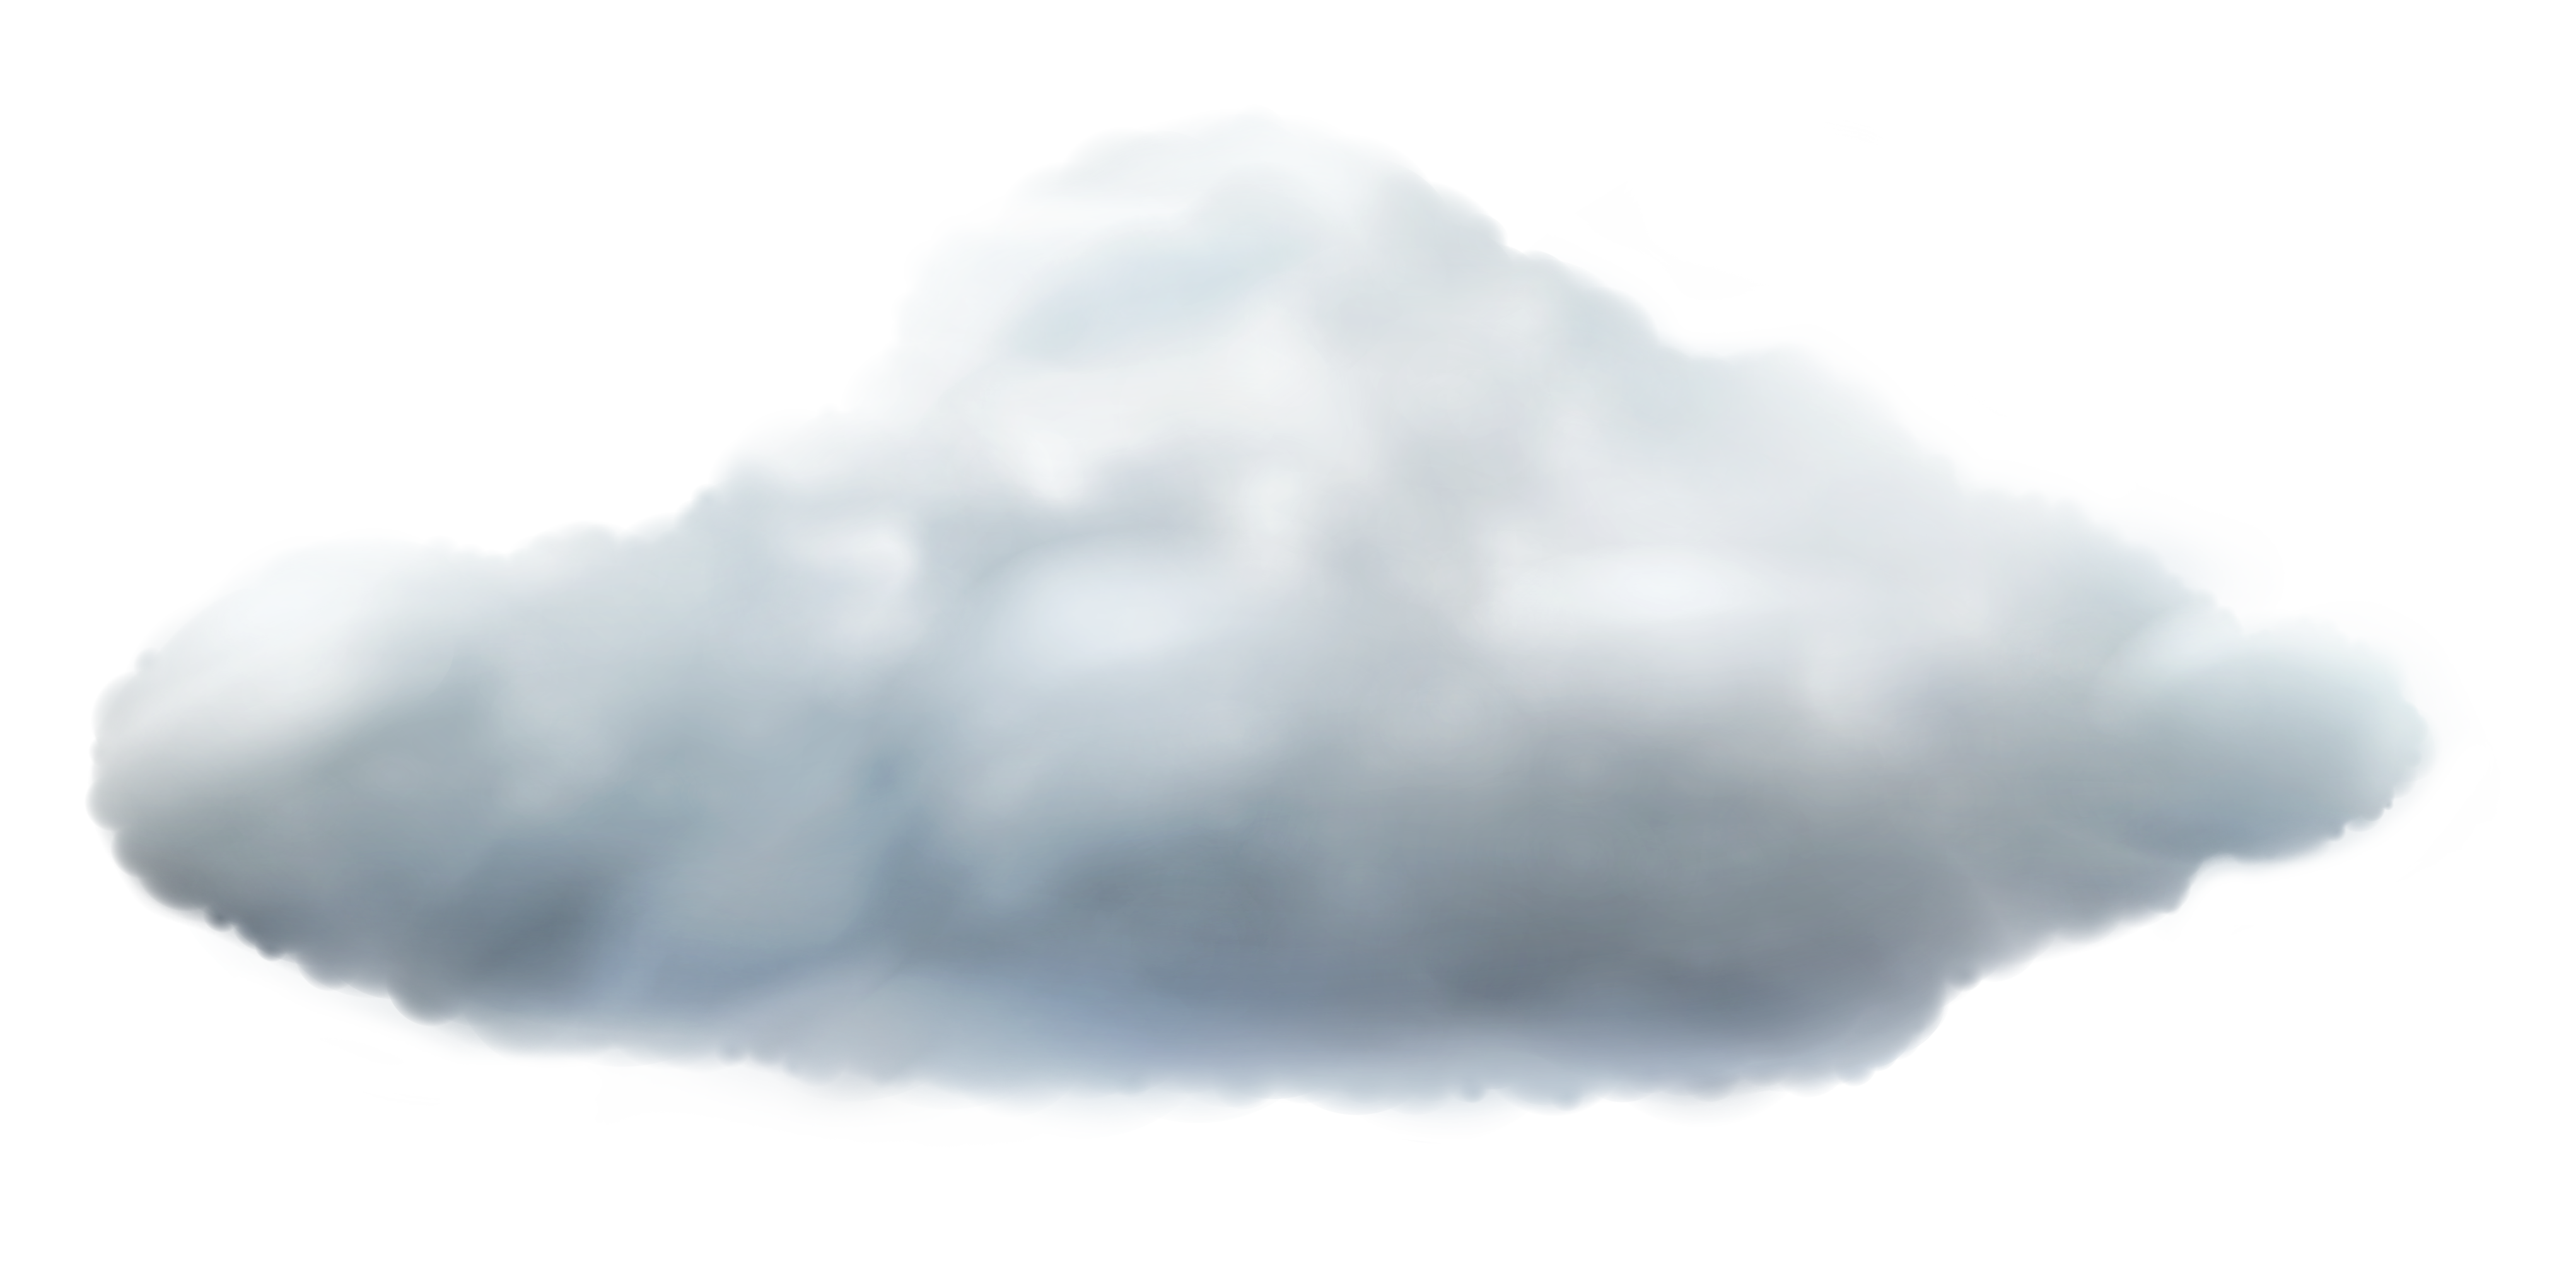 Clouds art png. Cloud clip image gallery